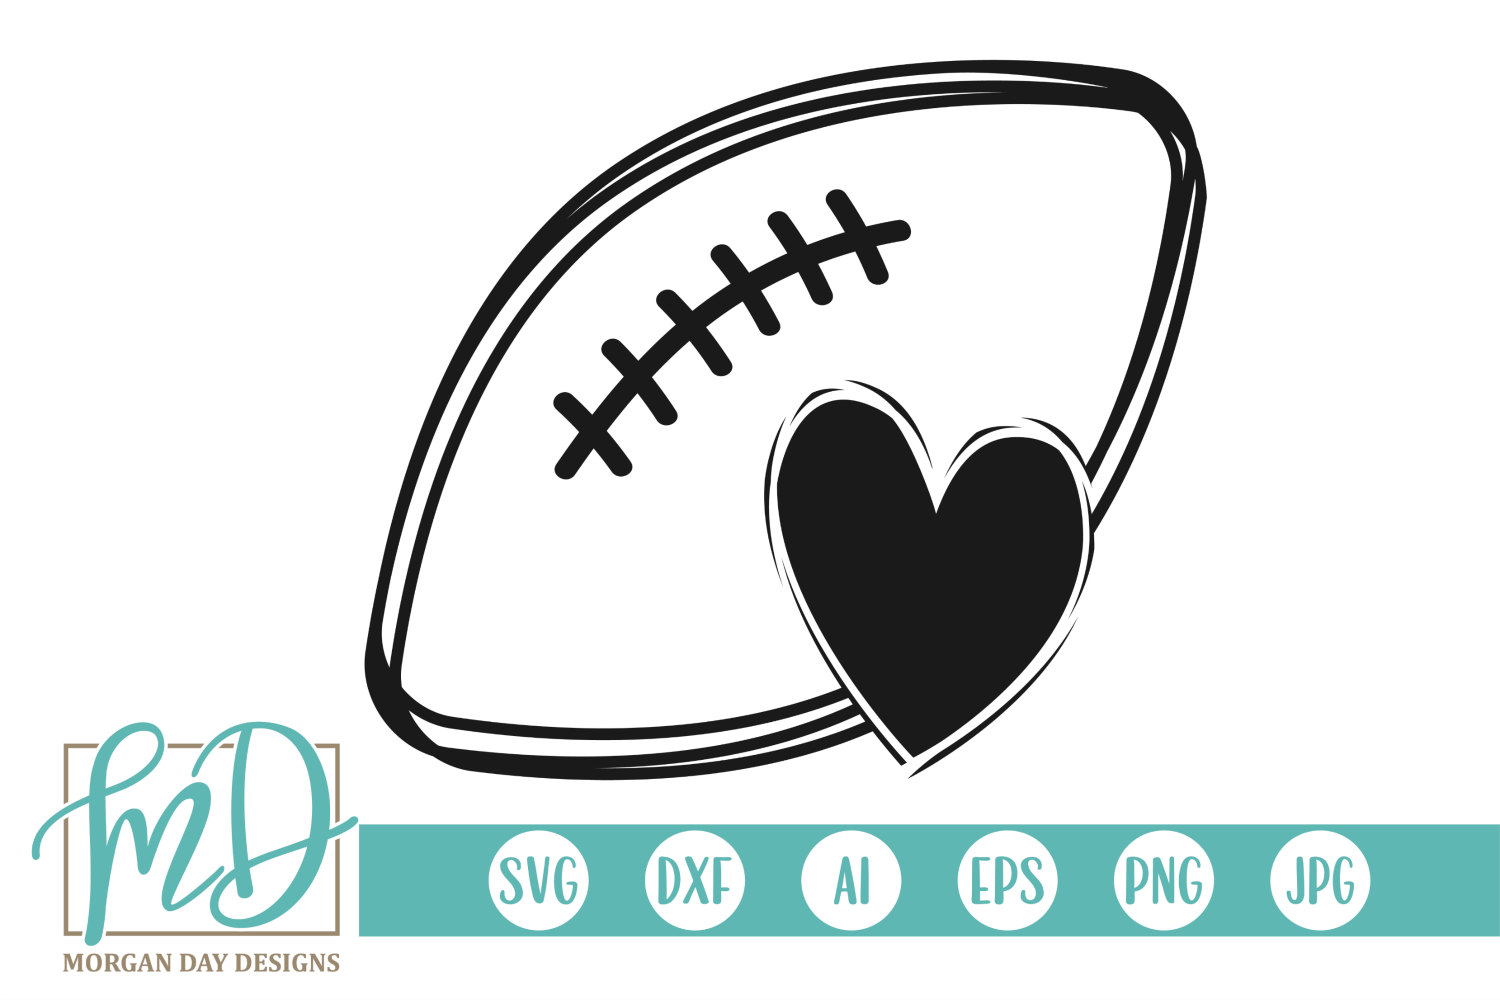 Football with Heart SVG, DXF, AI, EPS, PNG, JPEG example image 1